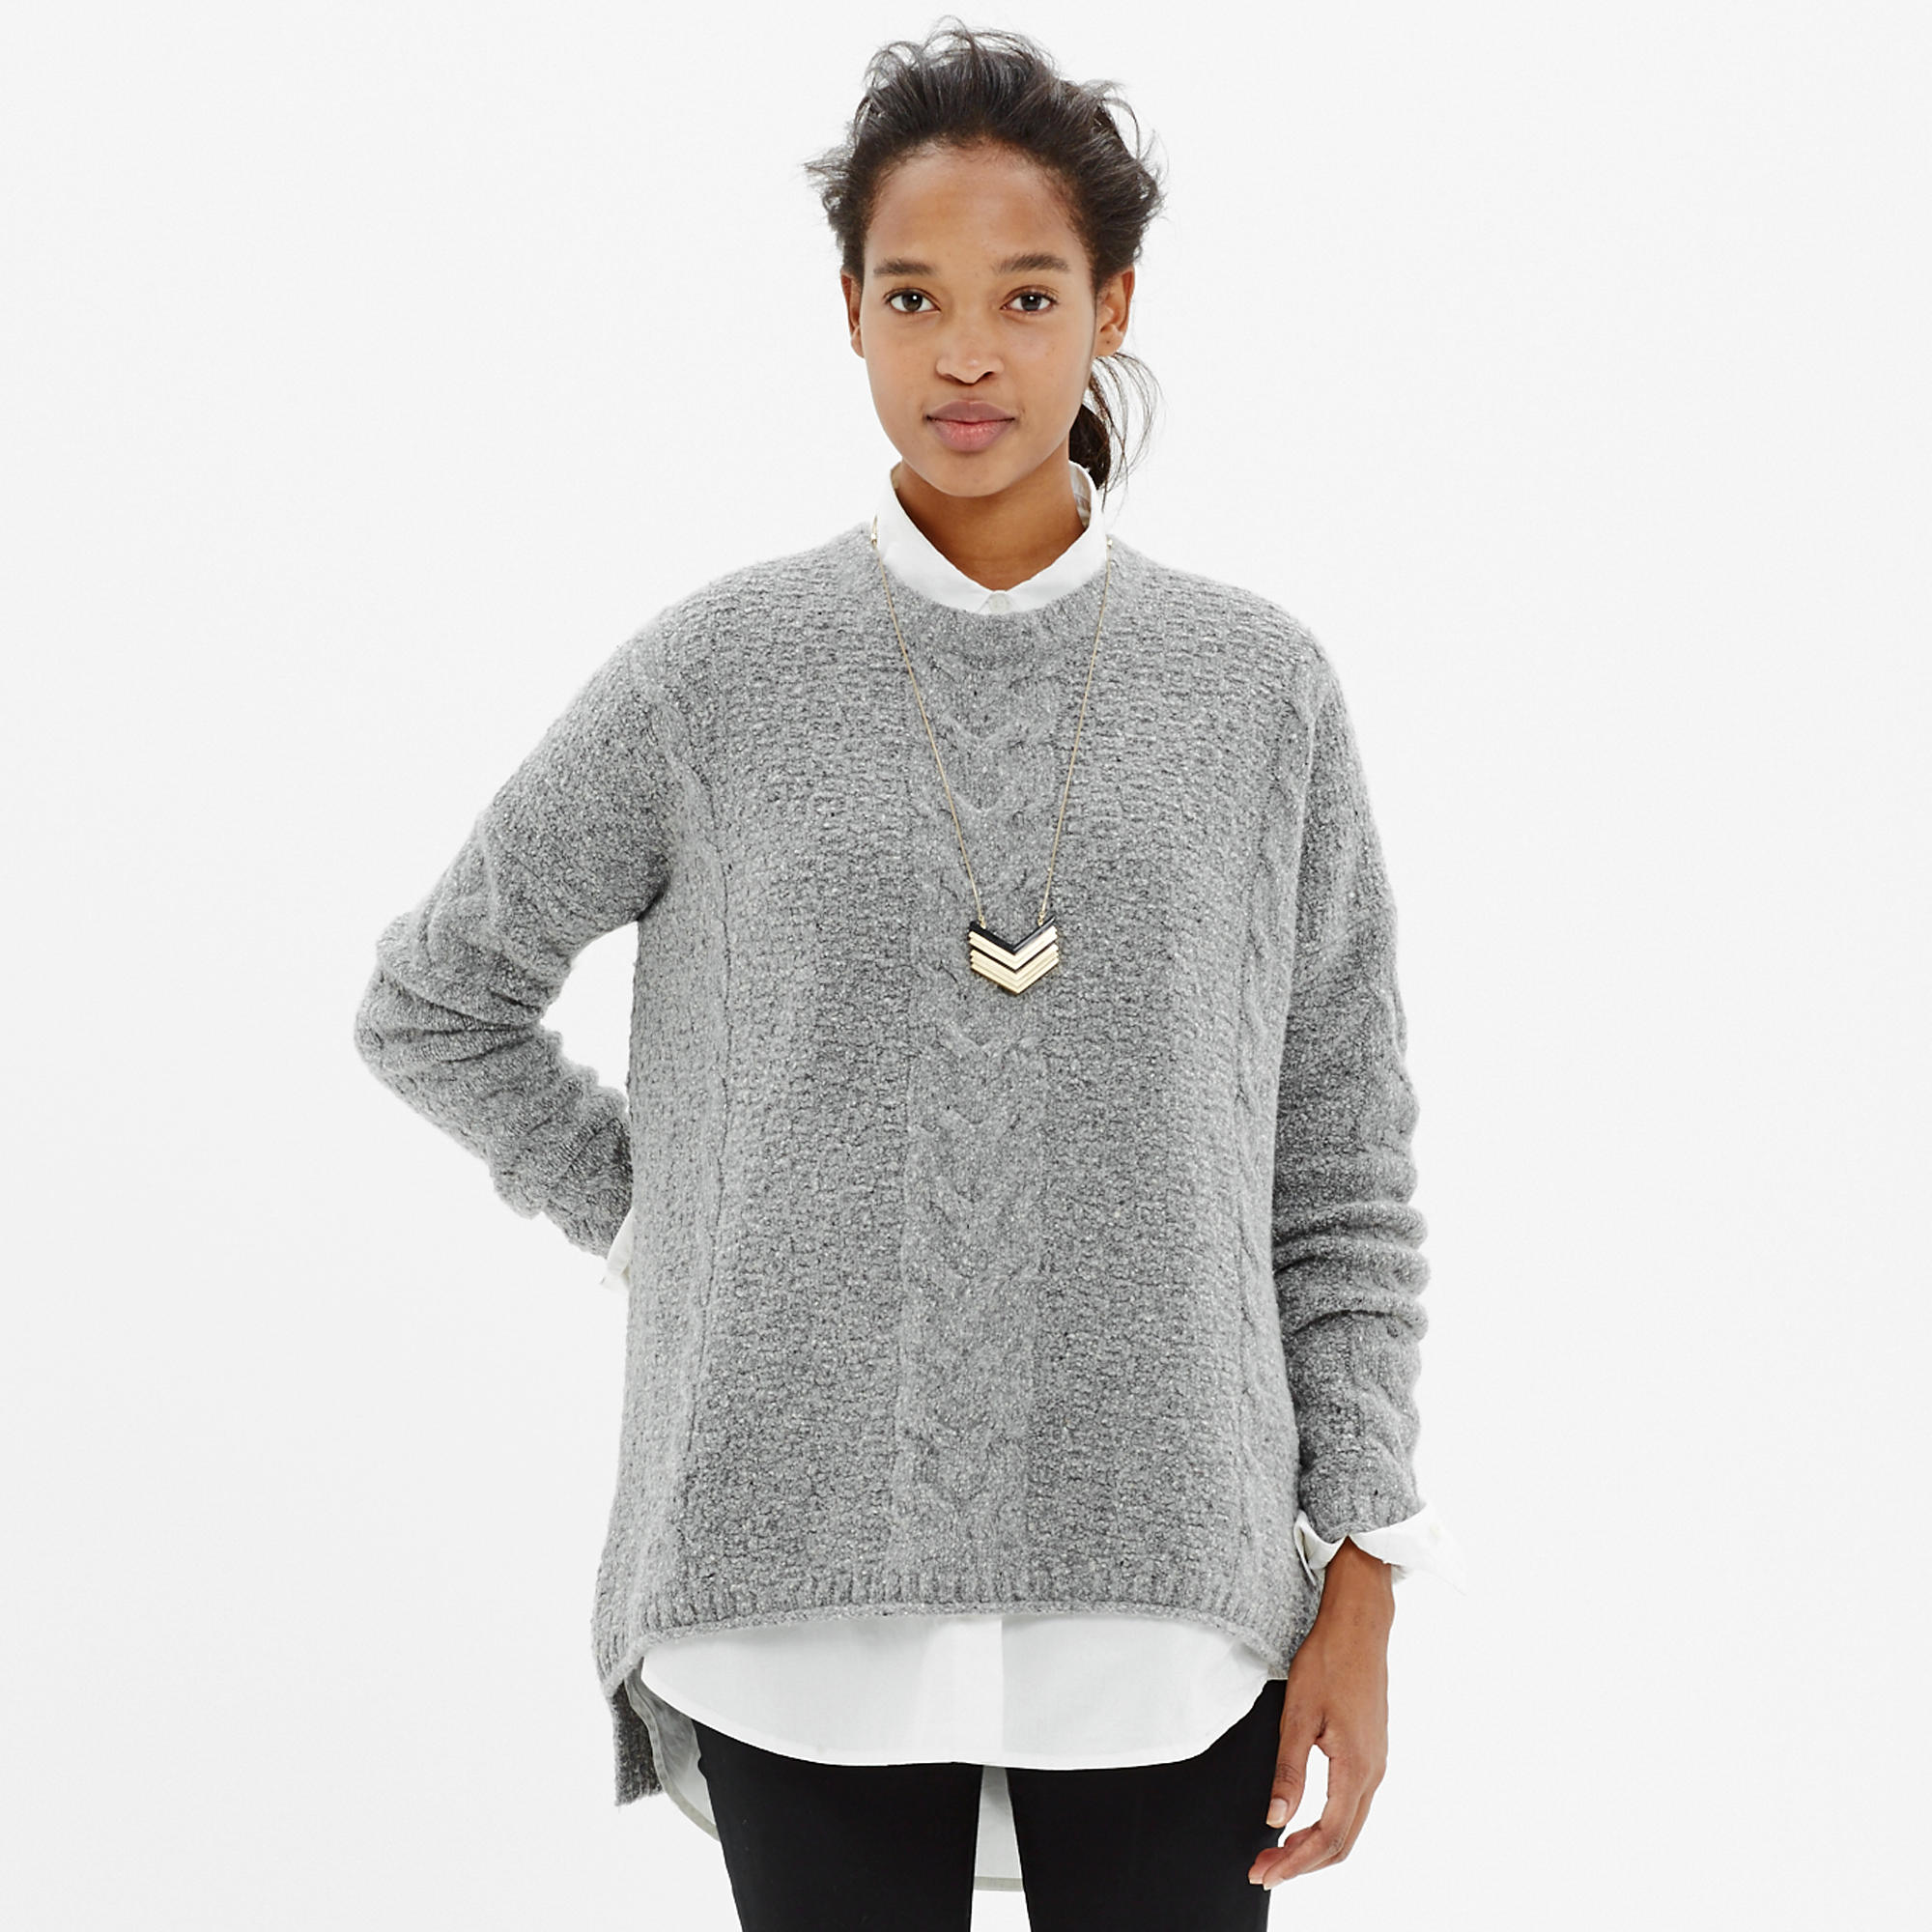 Easy Cable Pullover Sweater in Donegal : pullovers | Madewell